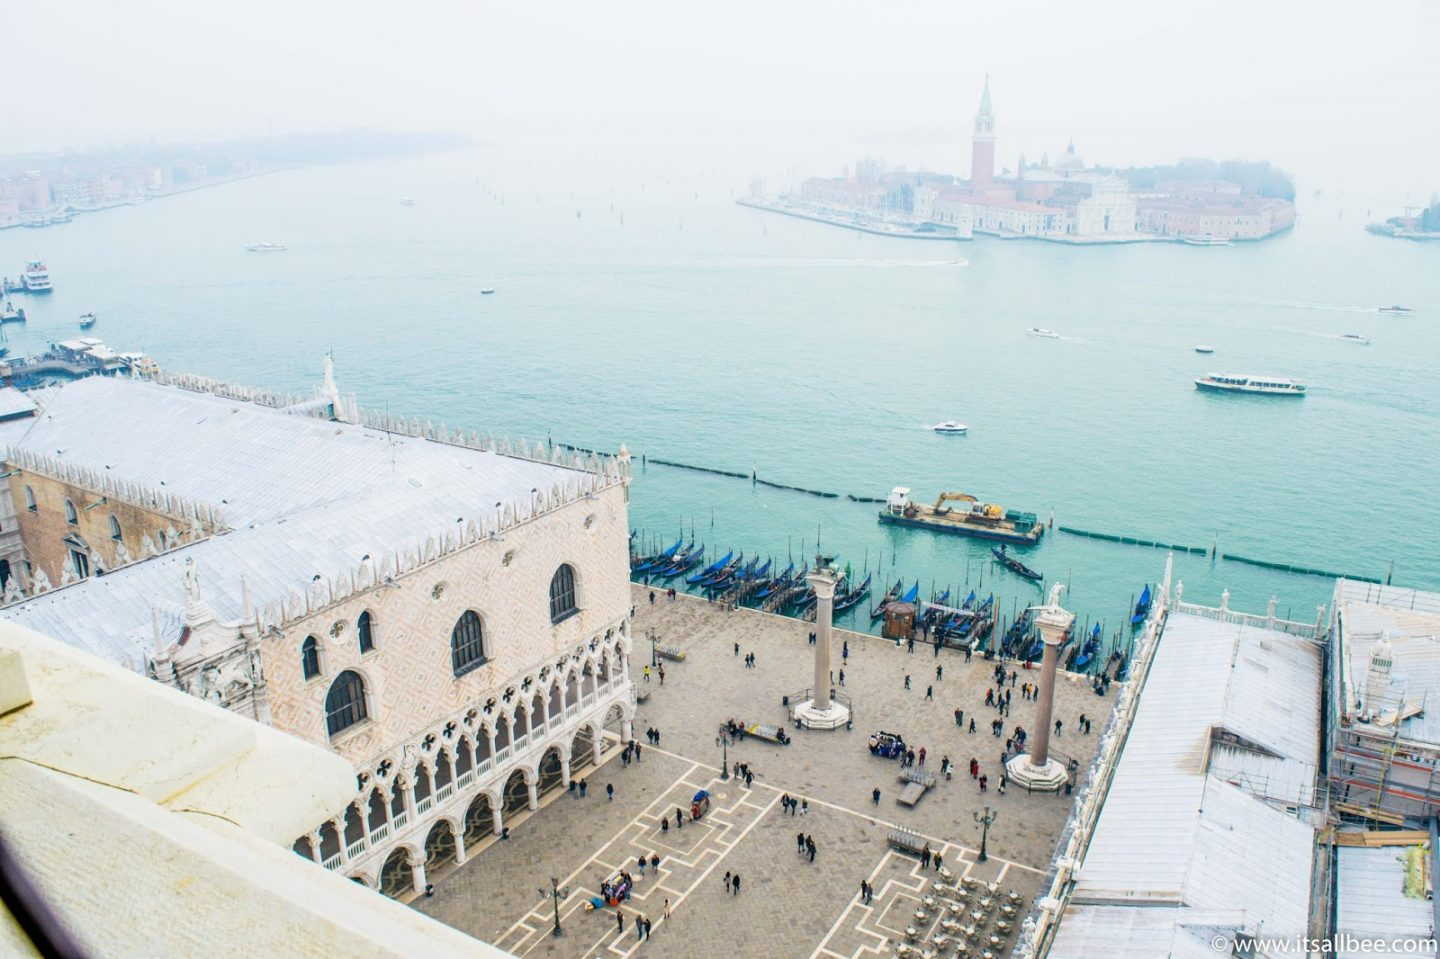 best places in venice | the best place in venice | best places venice | venice best spots | places in venice rooftops of venice